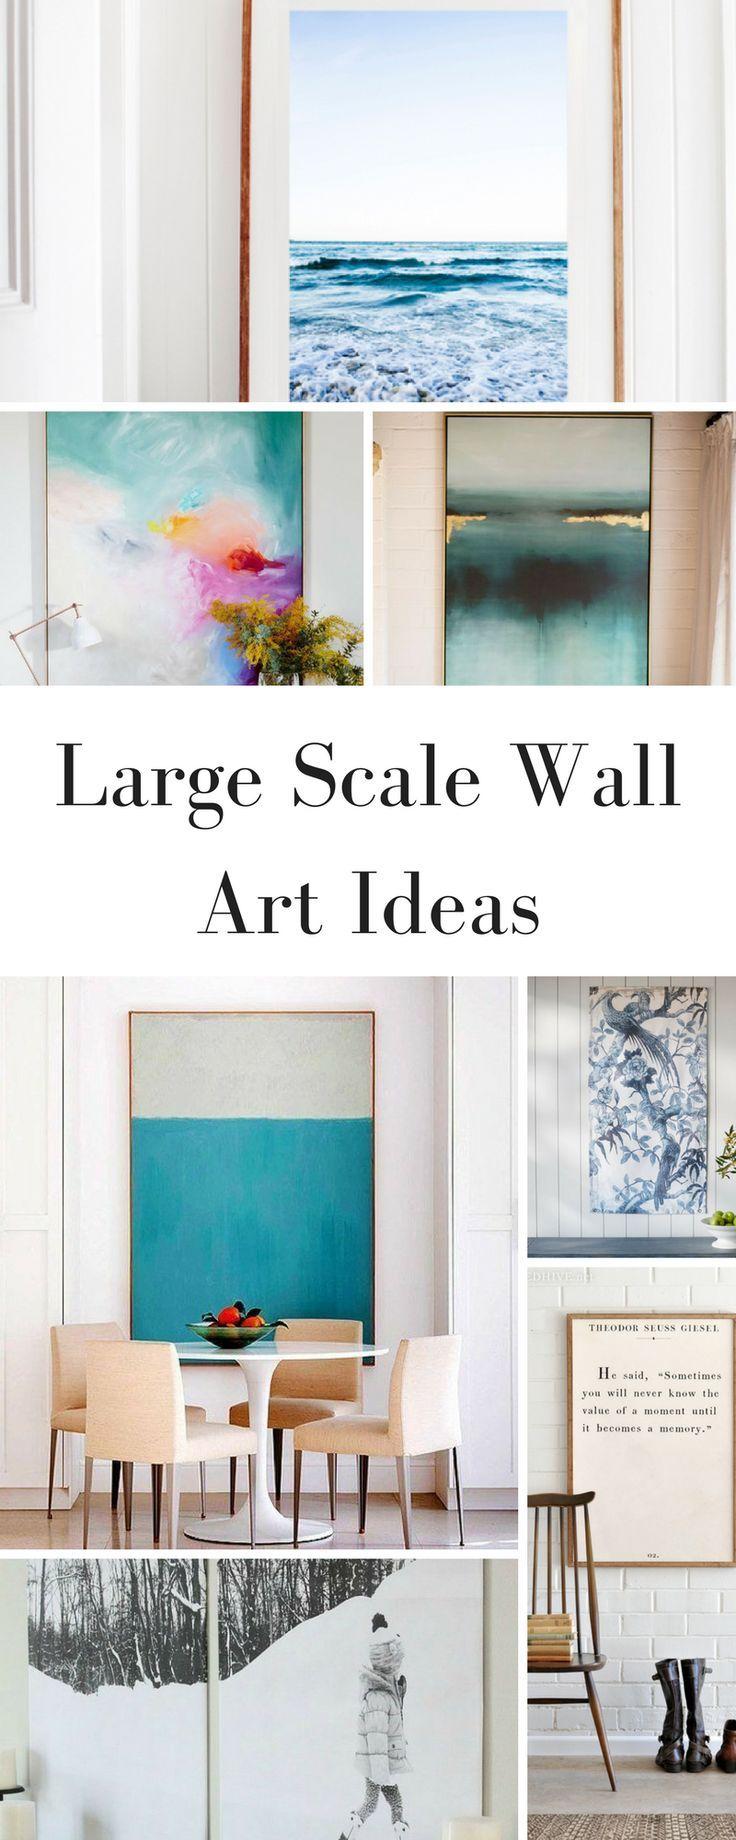 Here Are Some Great Ideas For Large Scale Wall Art And Inspiration